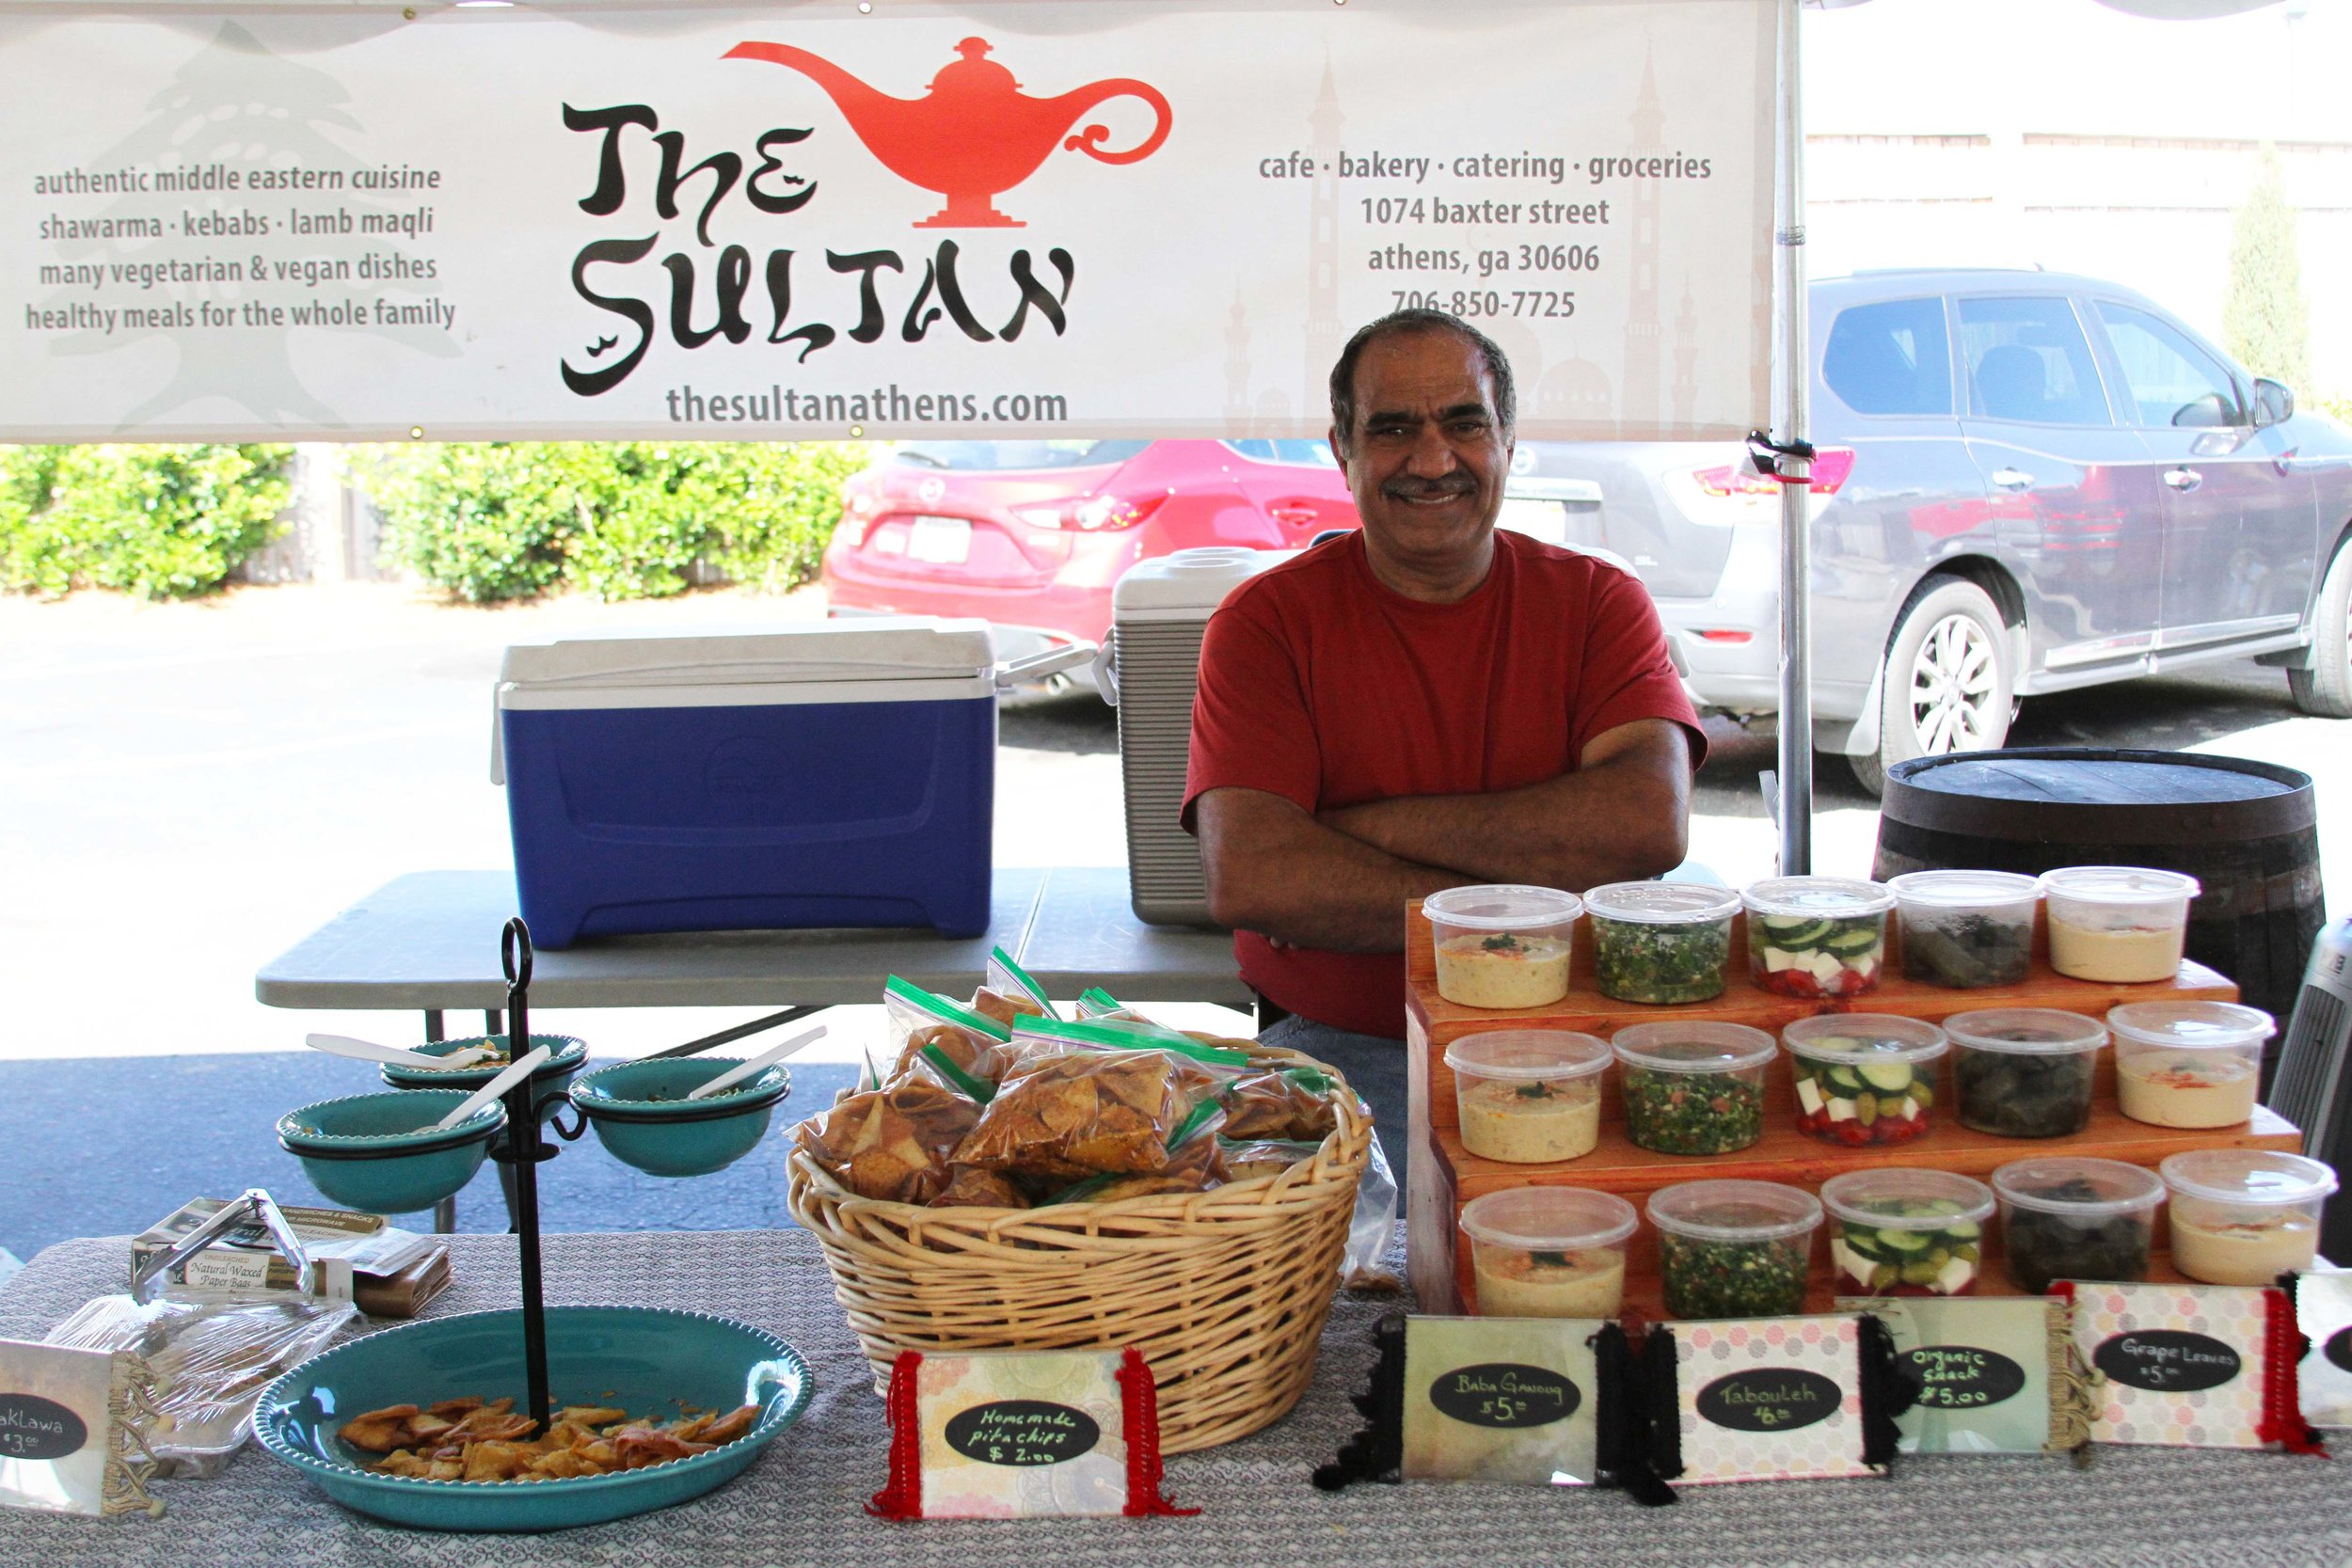 CCBC_FarmersMarket_TheSultan.jpg